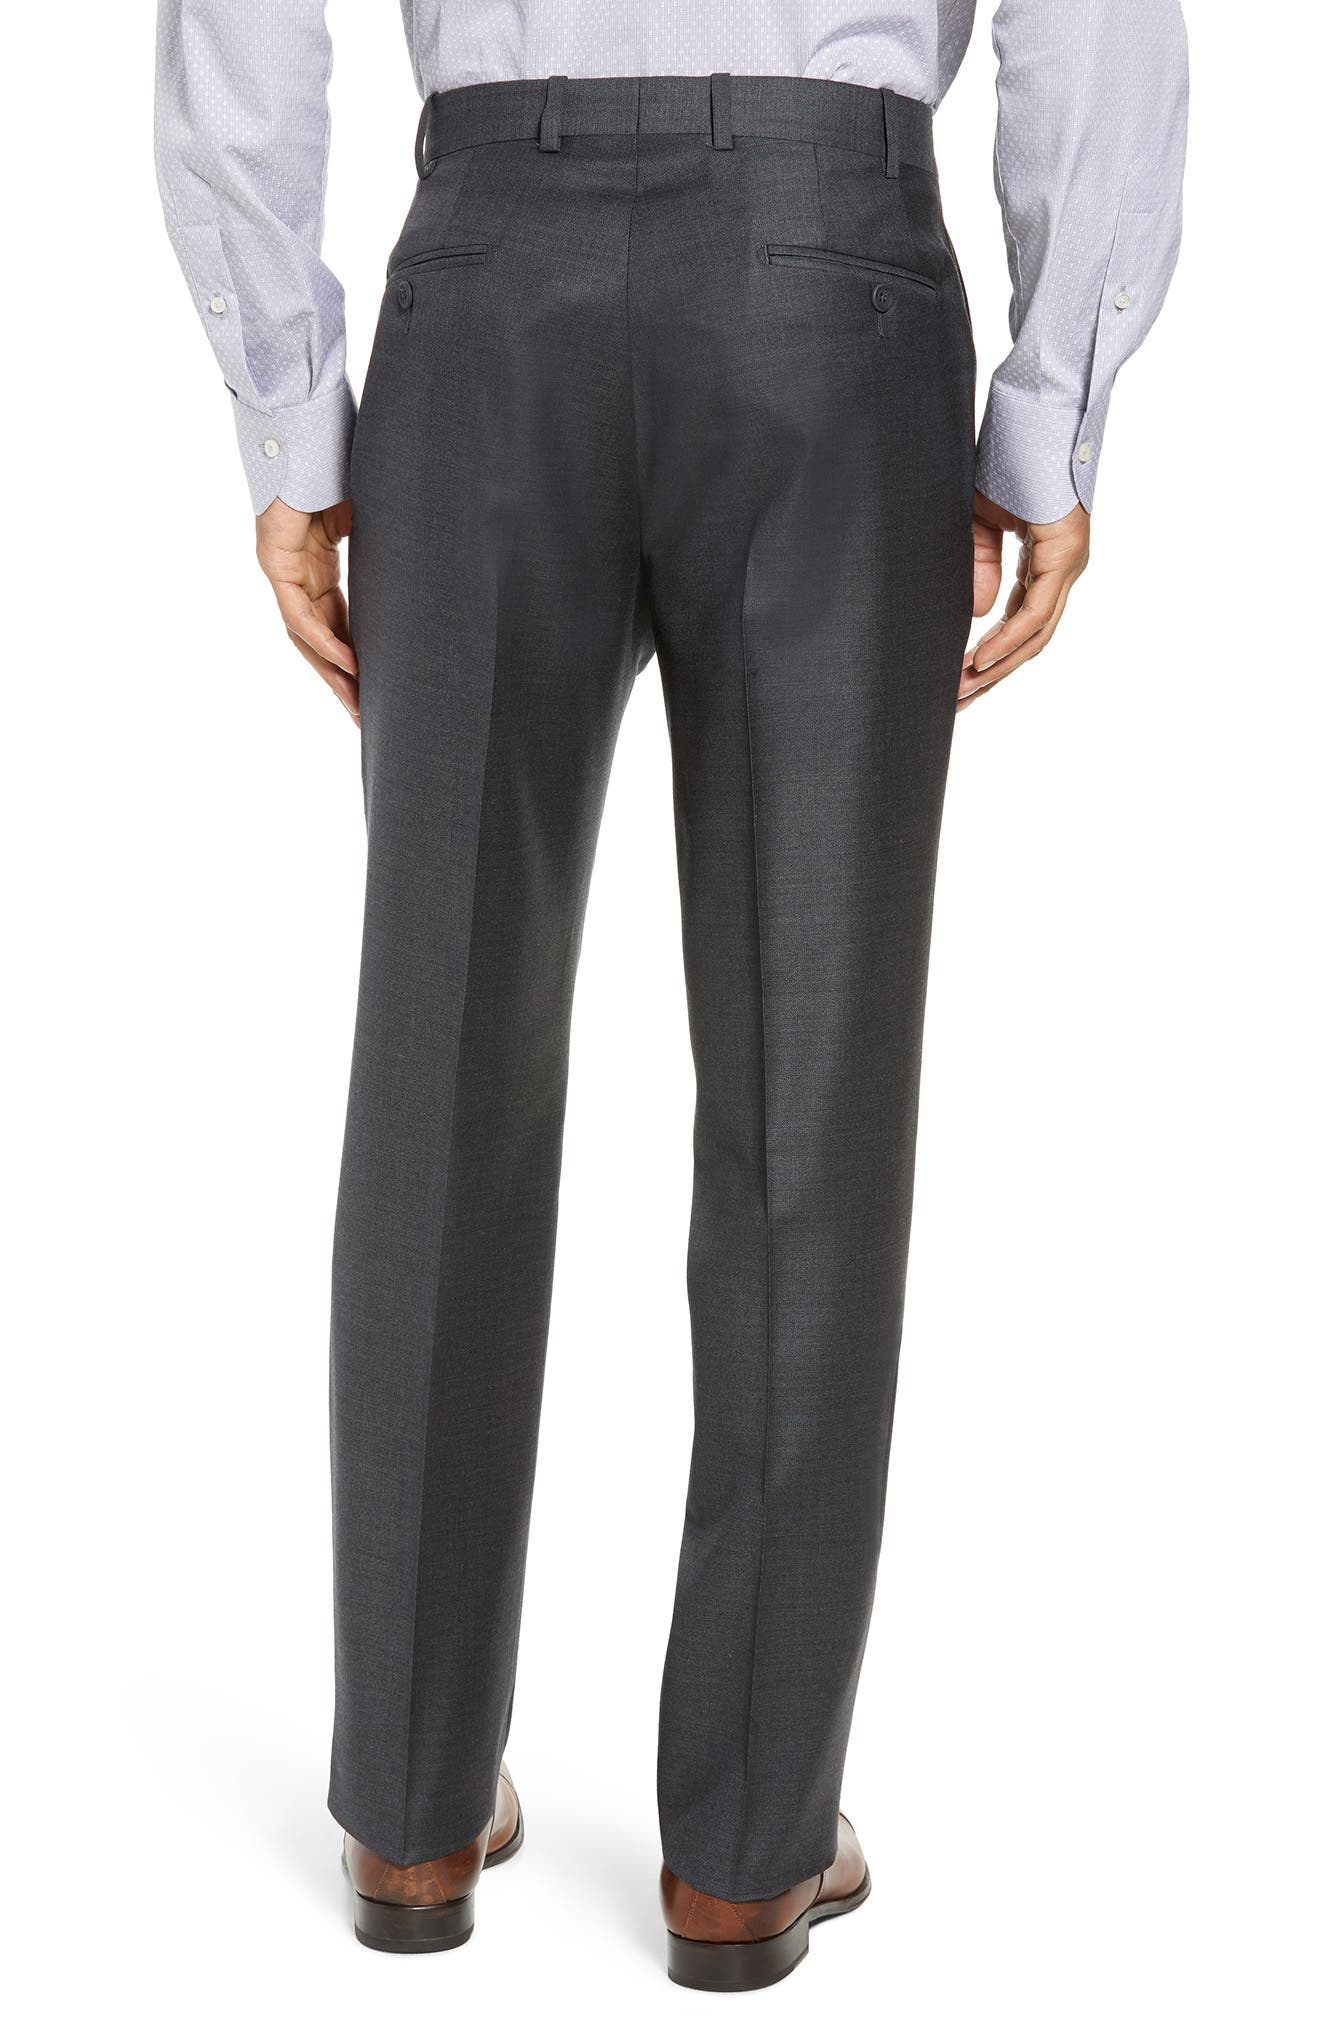 Torino Flat Front Solid Wool Trousers,                             Alternate thumbnail 4, color,